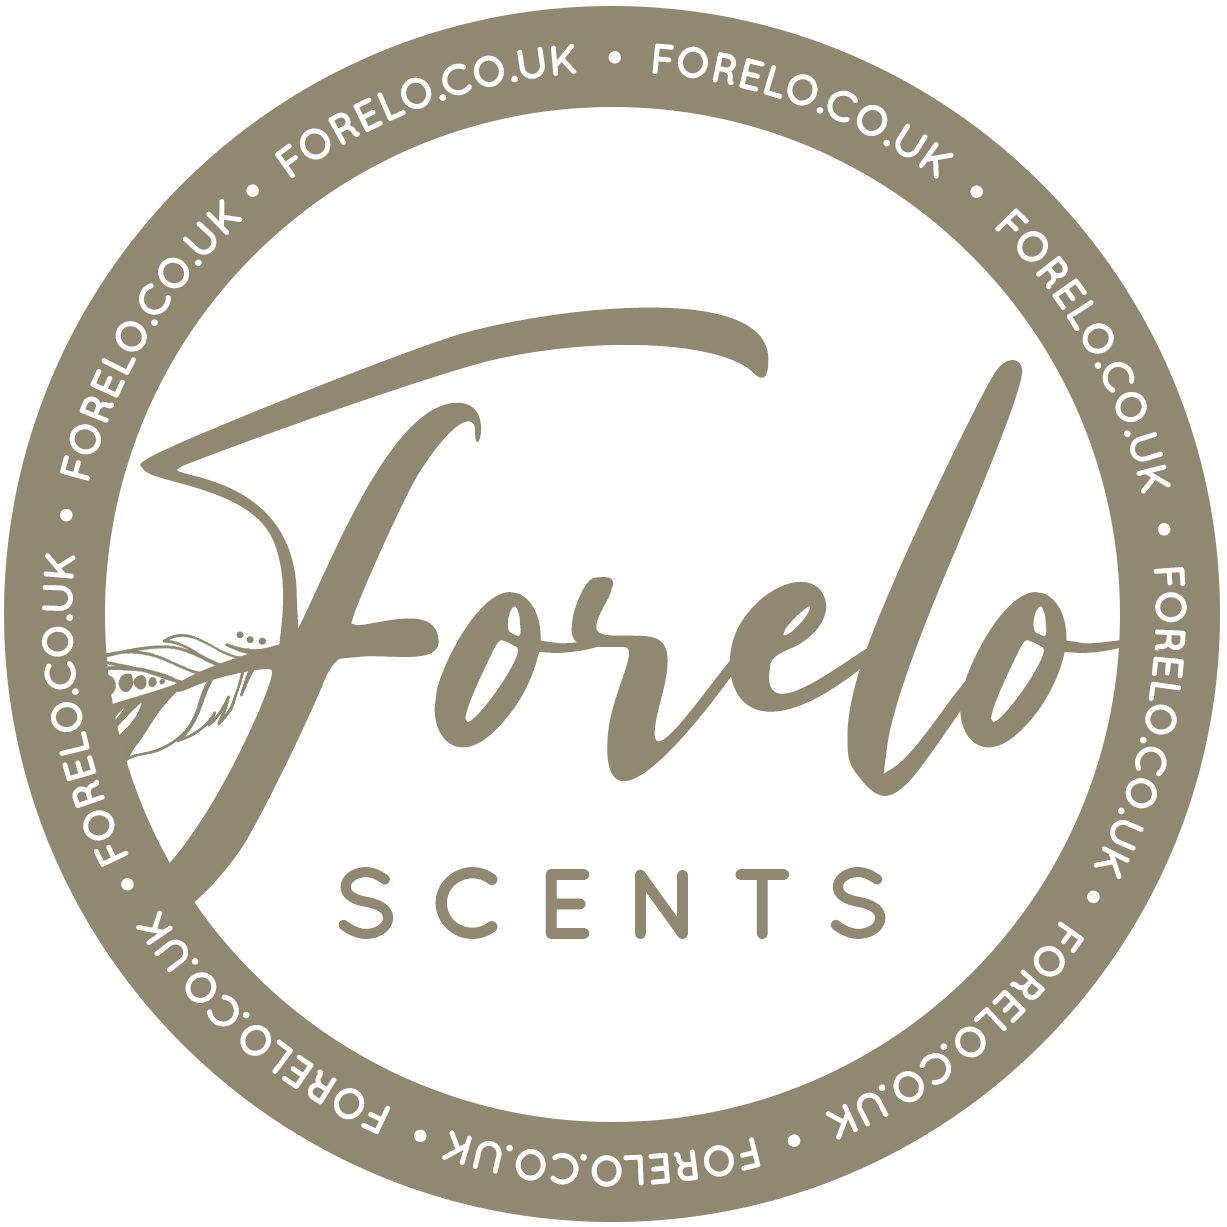 Read Forelo Scents Reviews